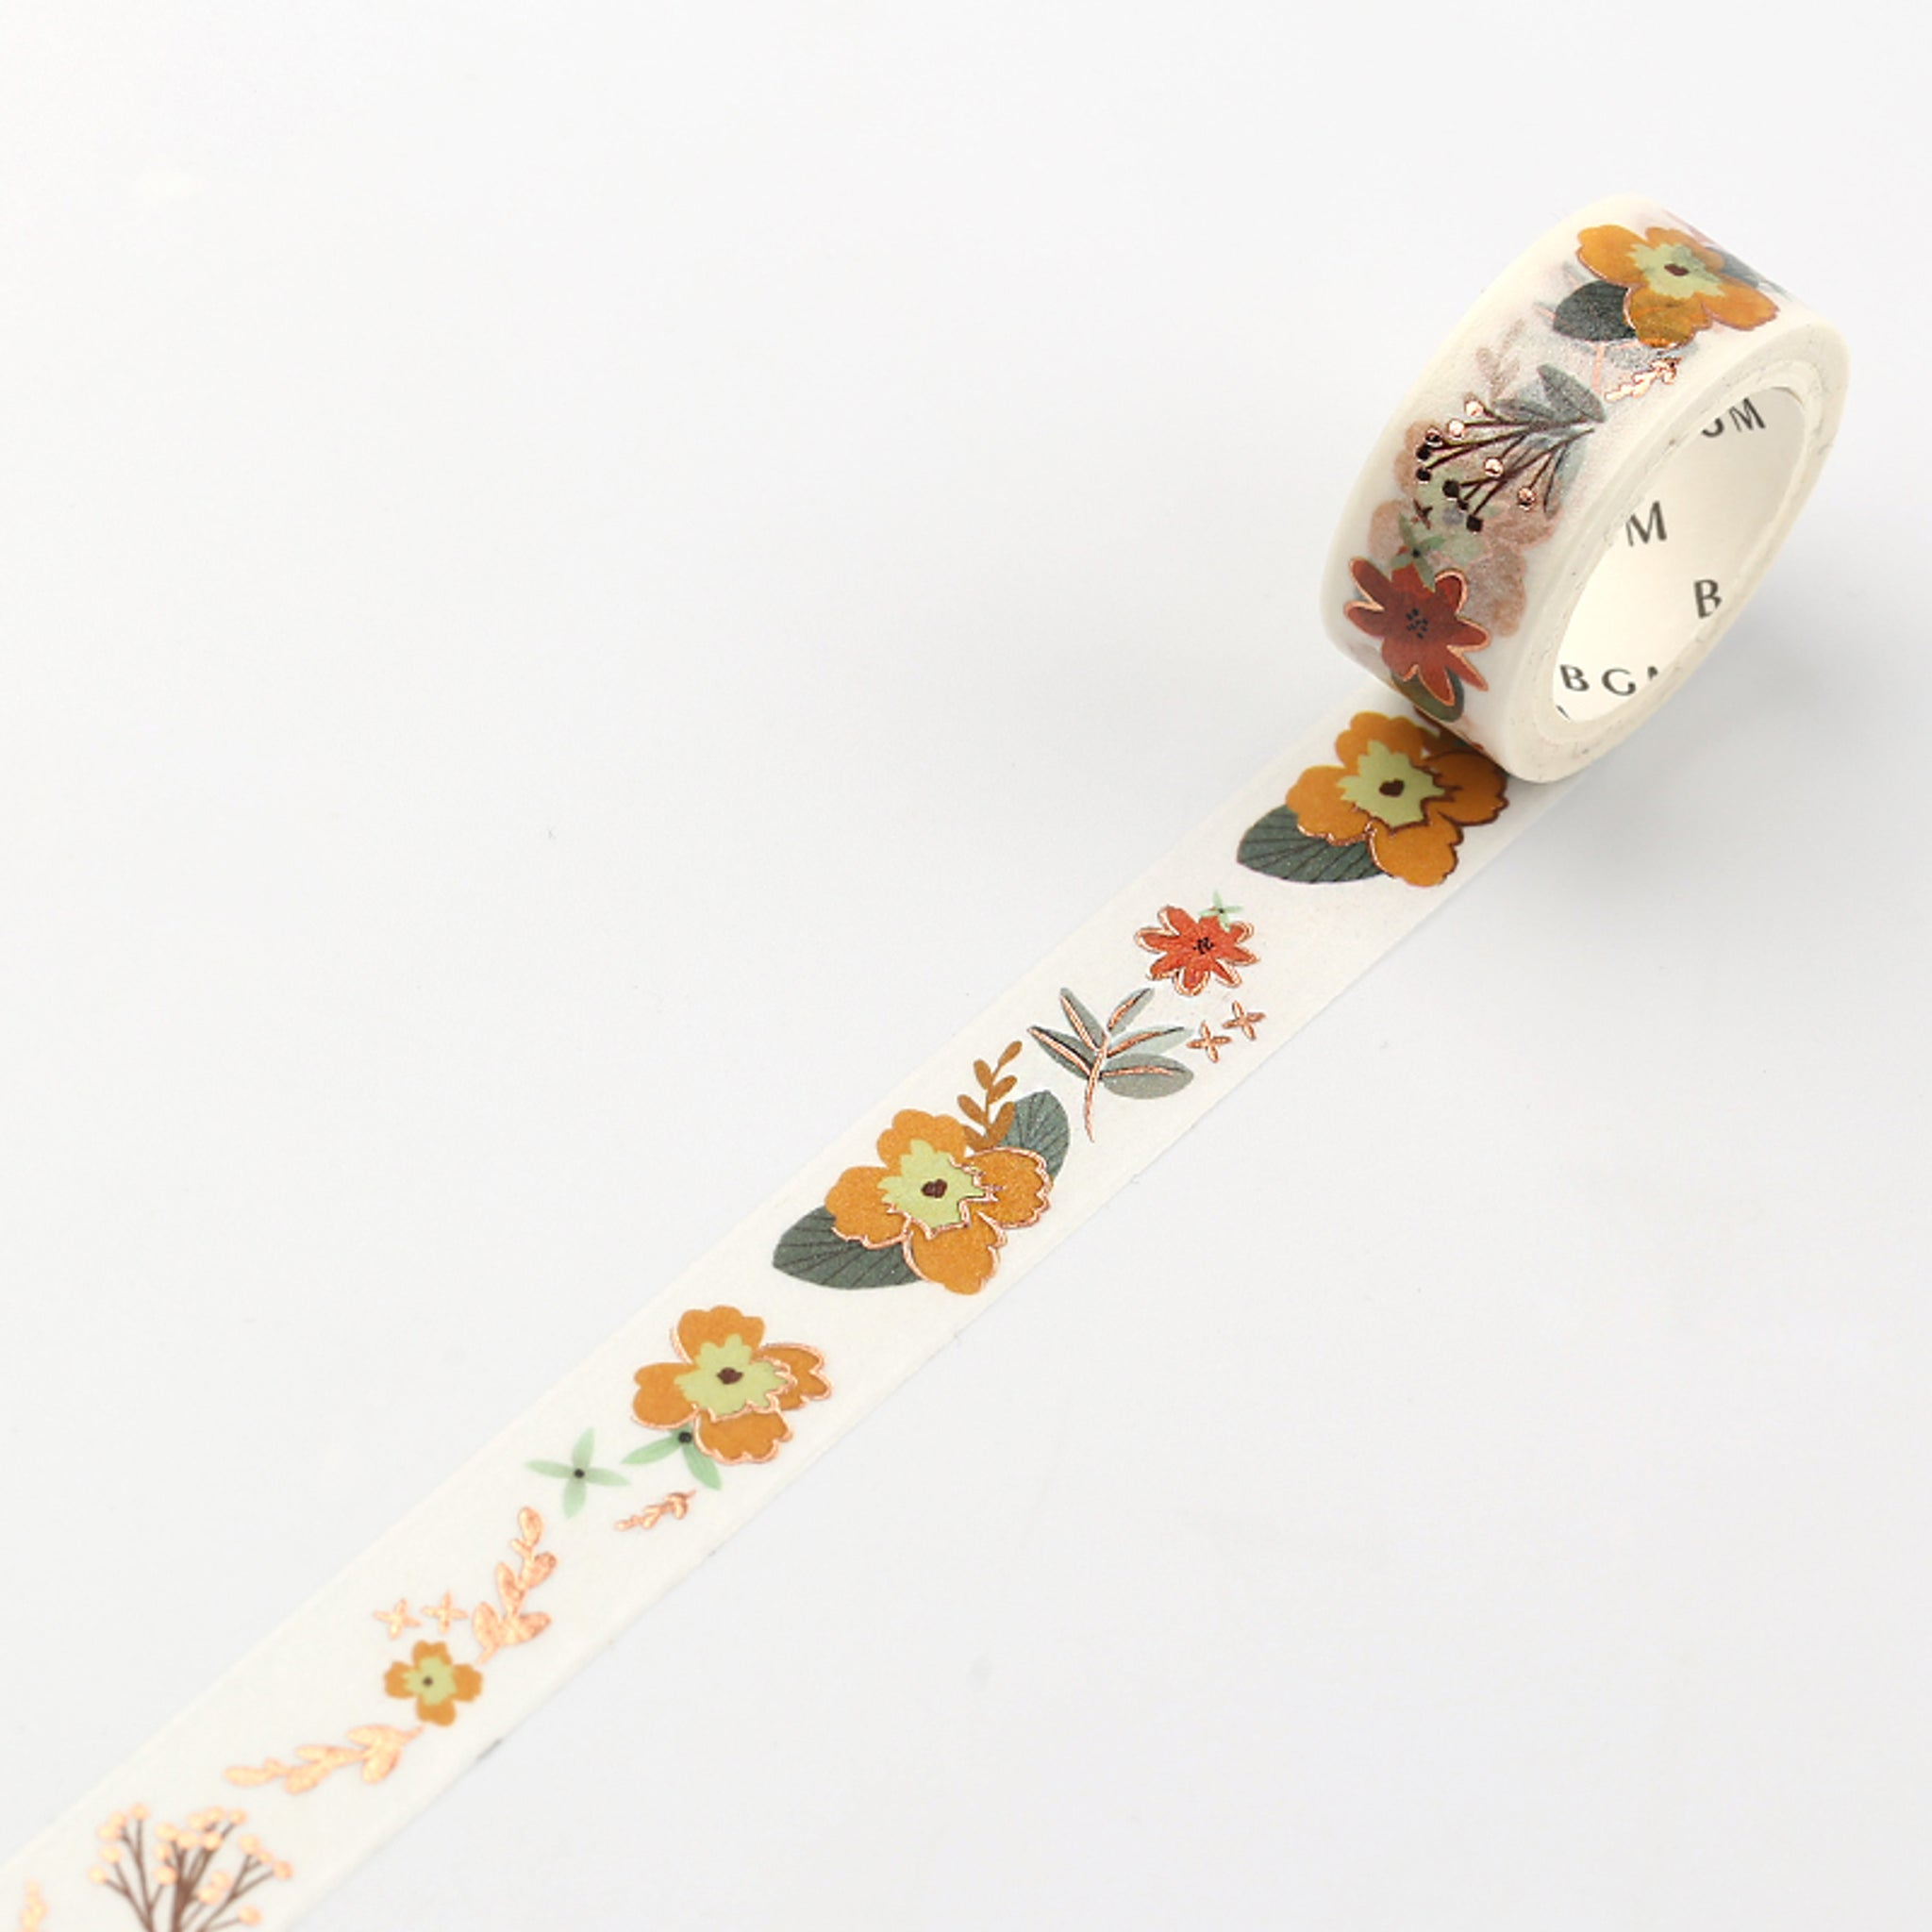 BGM Yellow Flower Washi Tape